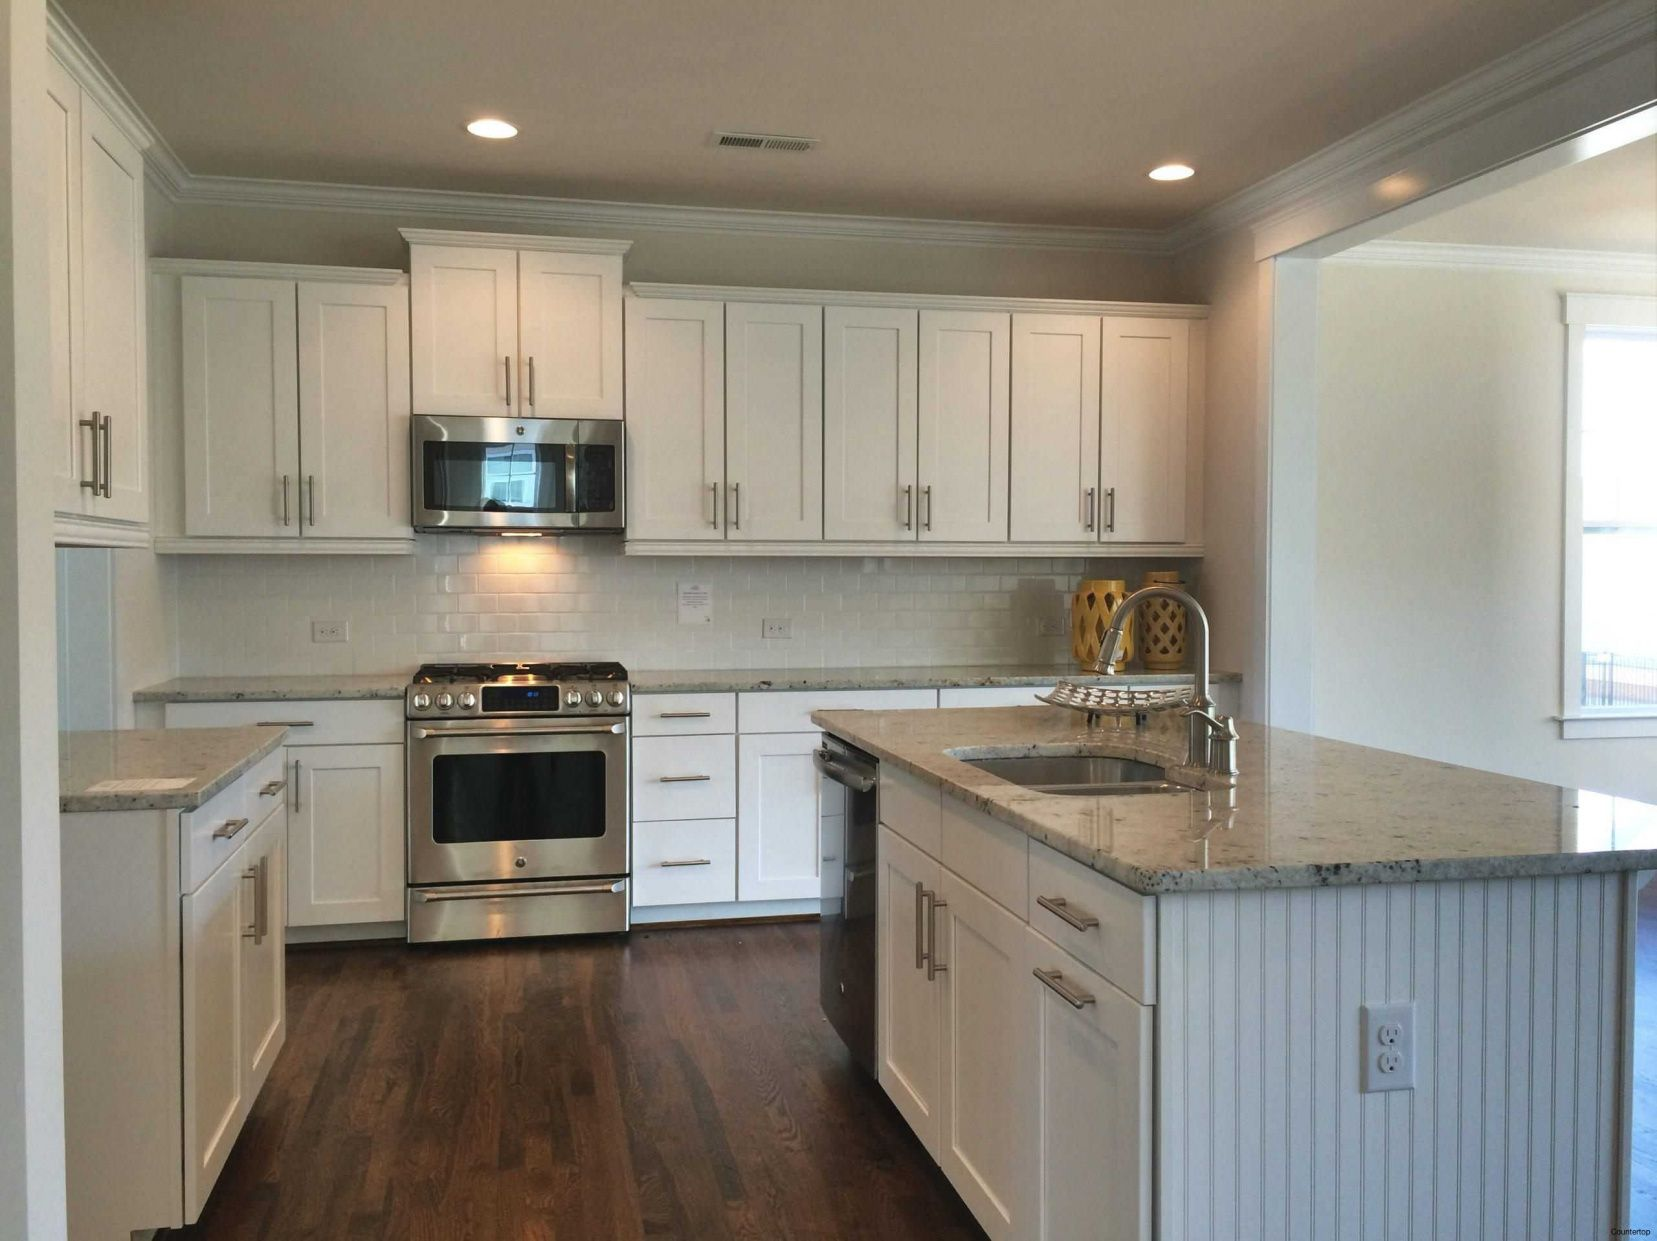 2019 What Should You Use to Clean Granite Countertops - Corner ...